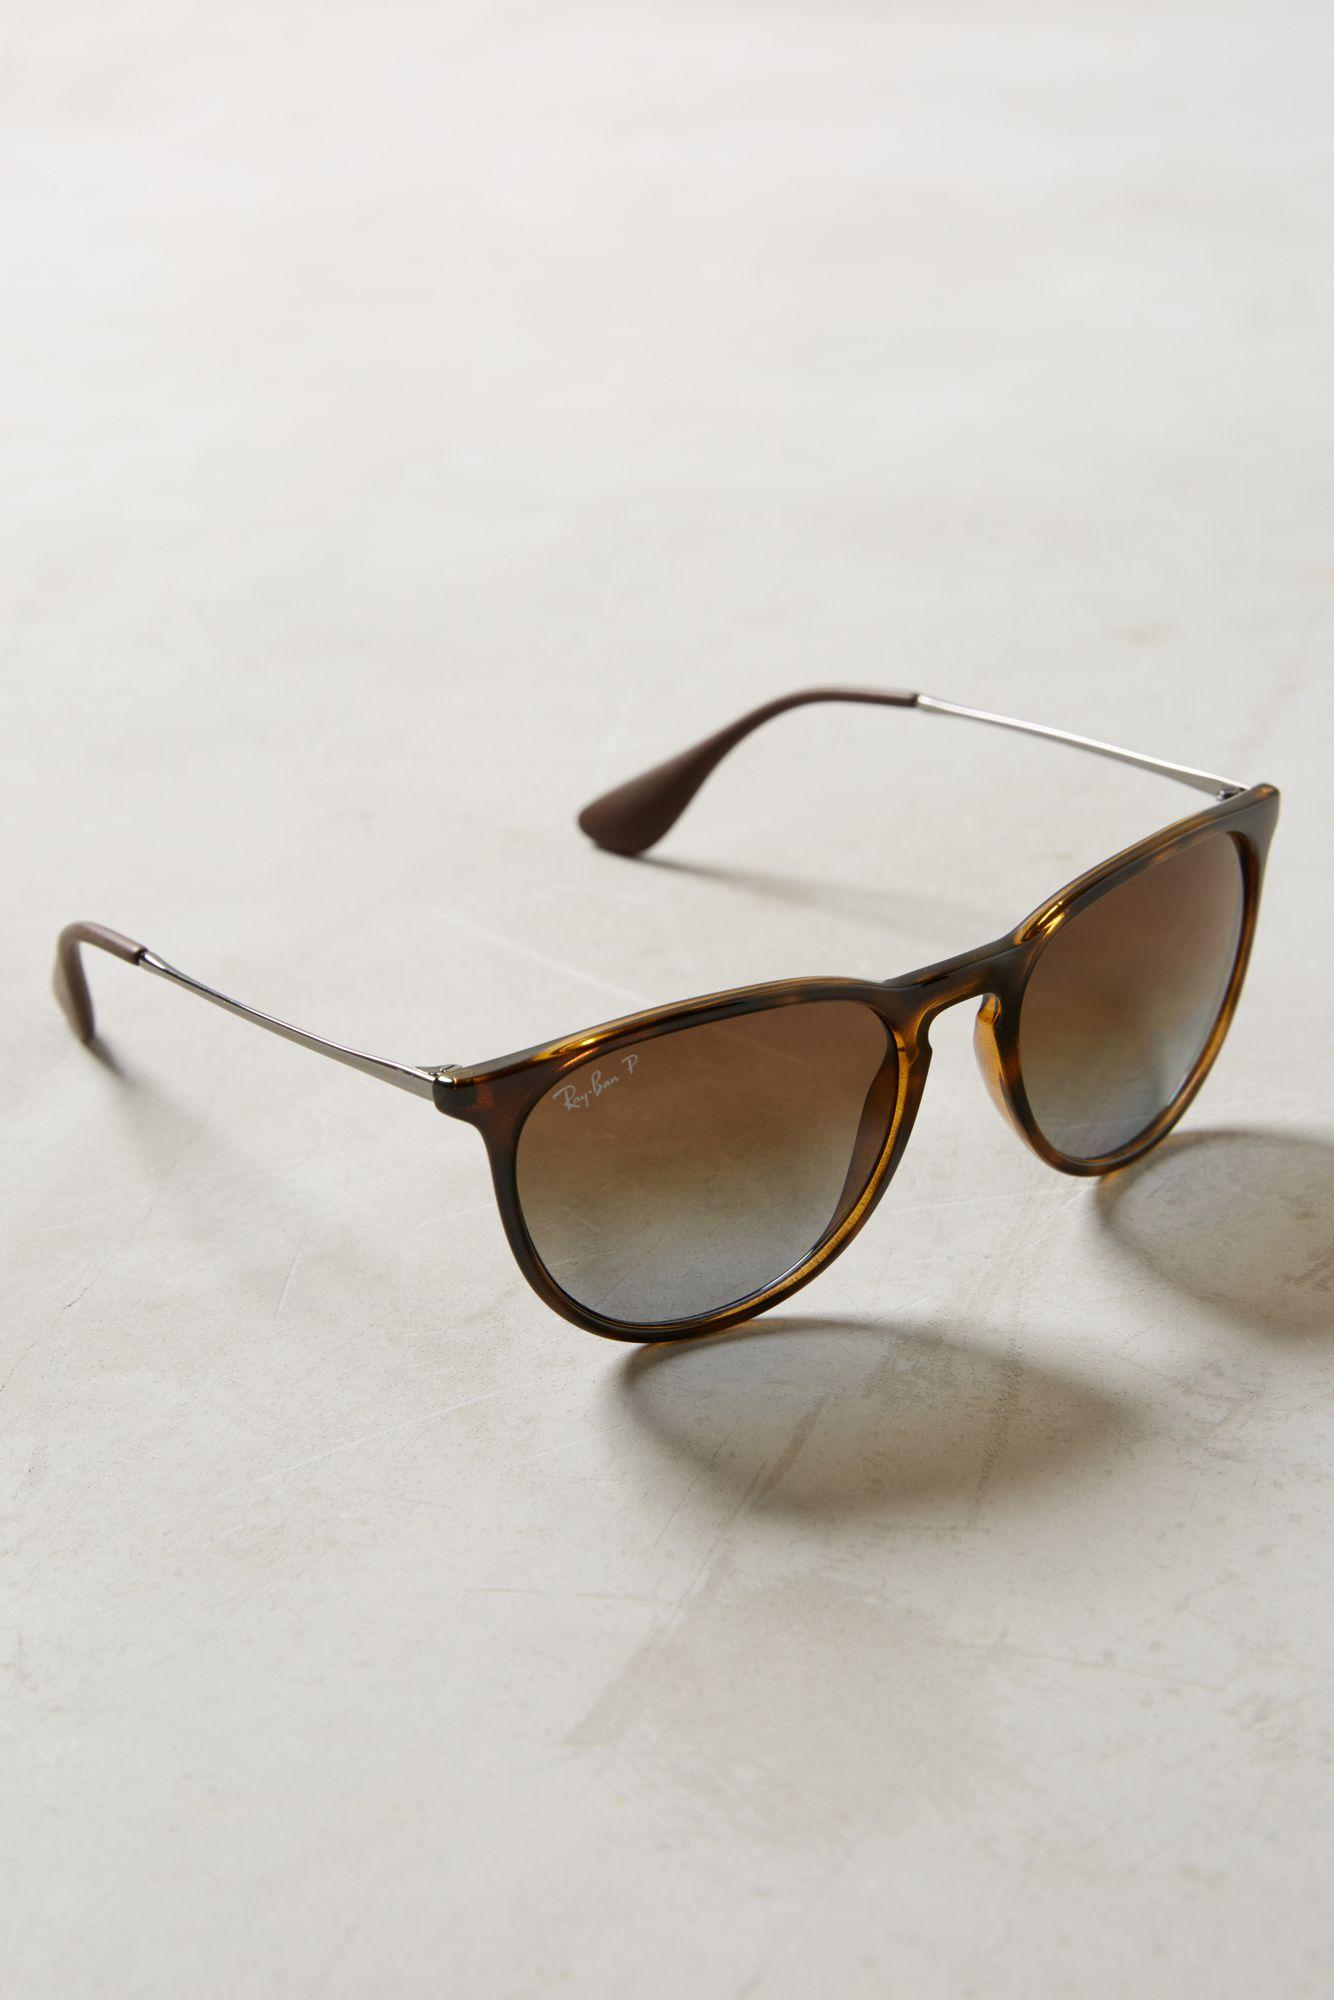 Ray-ban Polarized Erica Sunglasses in Brown